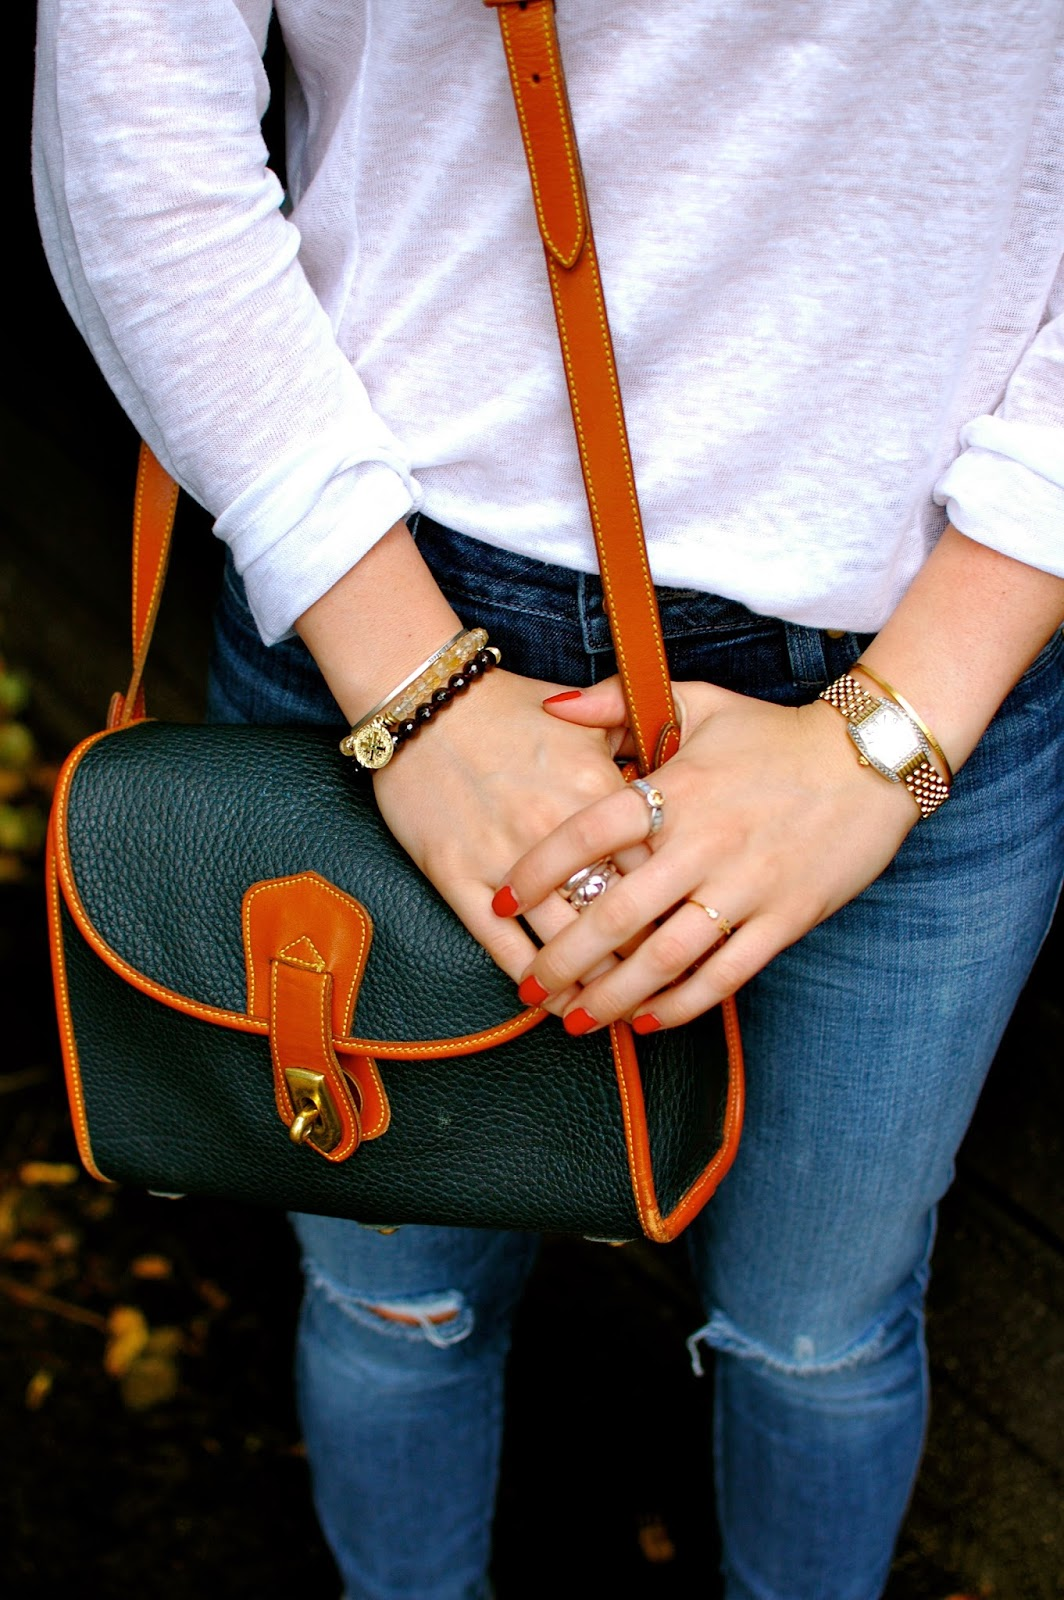 Dooney & Bourke, Brooke Worthington, Distressed Denim, Rings, Maria Beaulieu, Casual Saturday Style